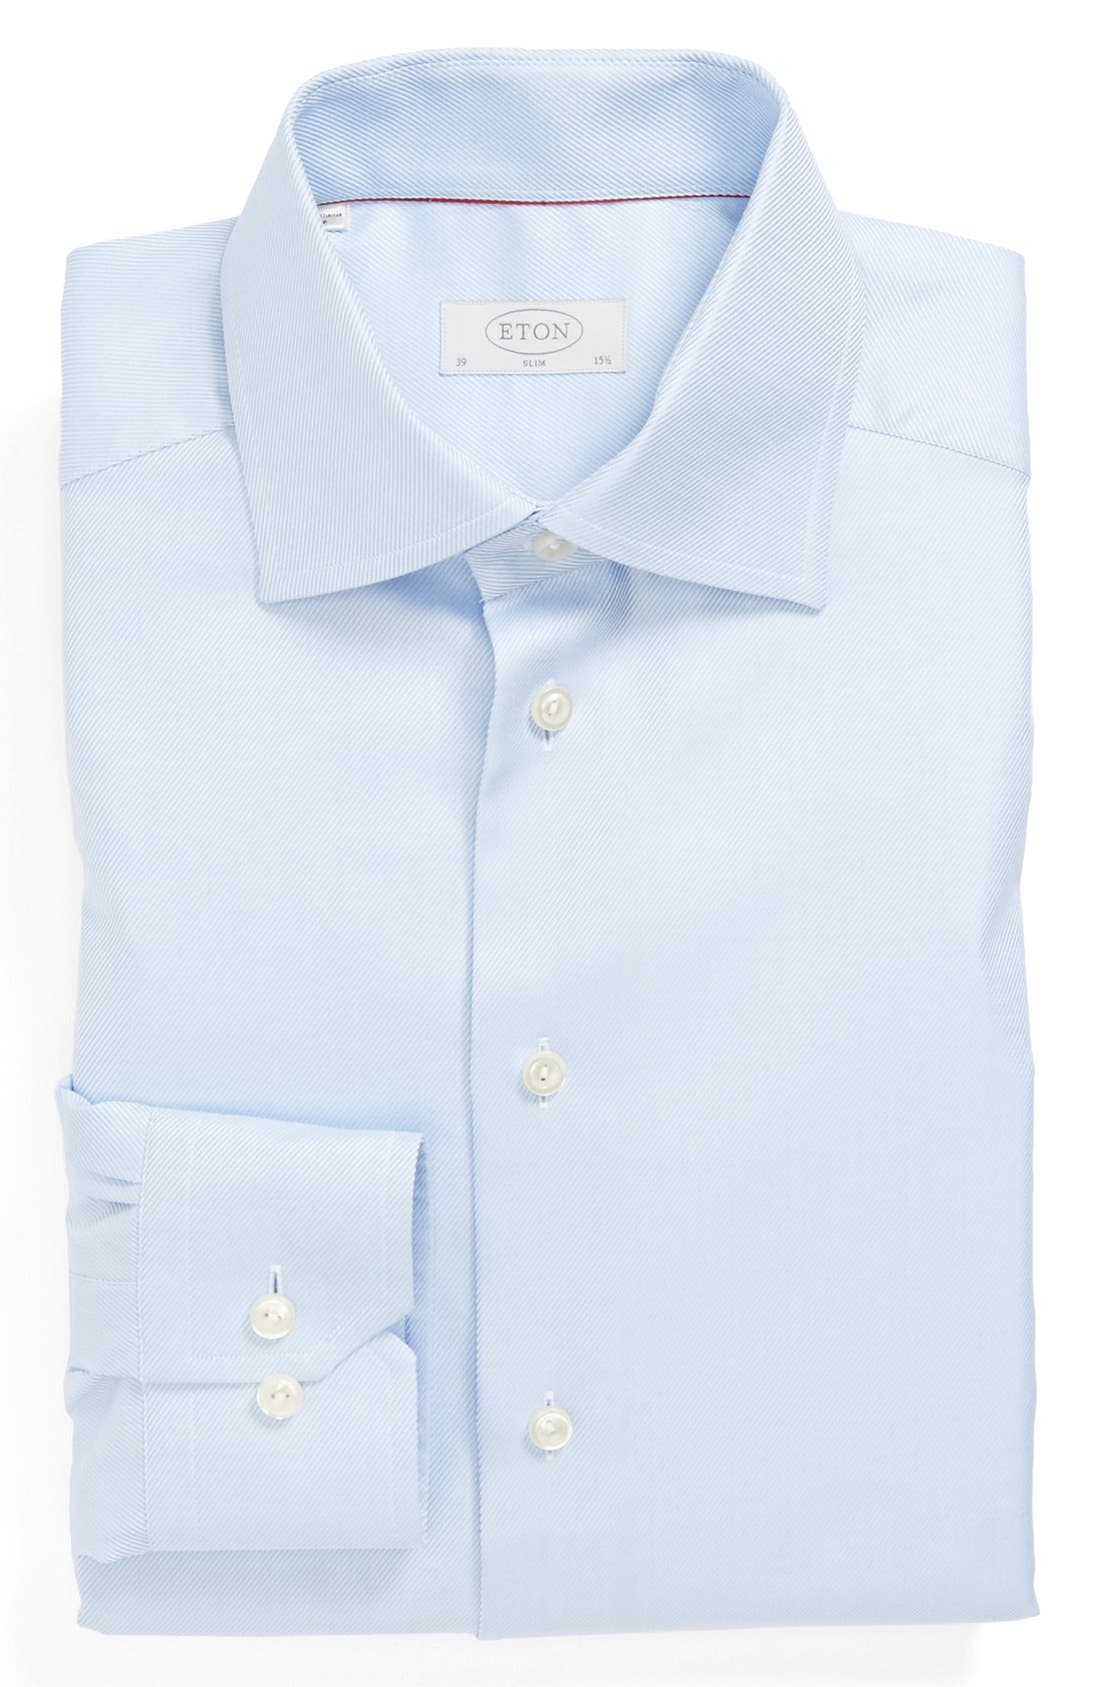 Main Image - Eton Slim Fit Non-Iron Dress Shirt